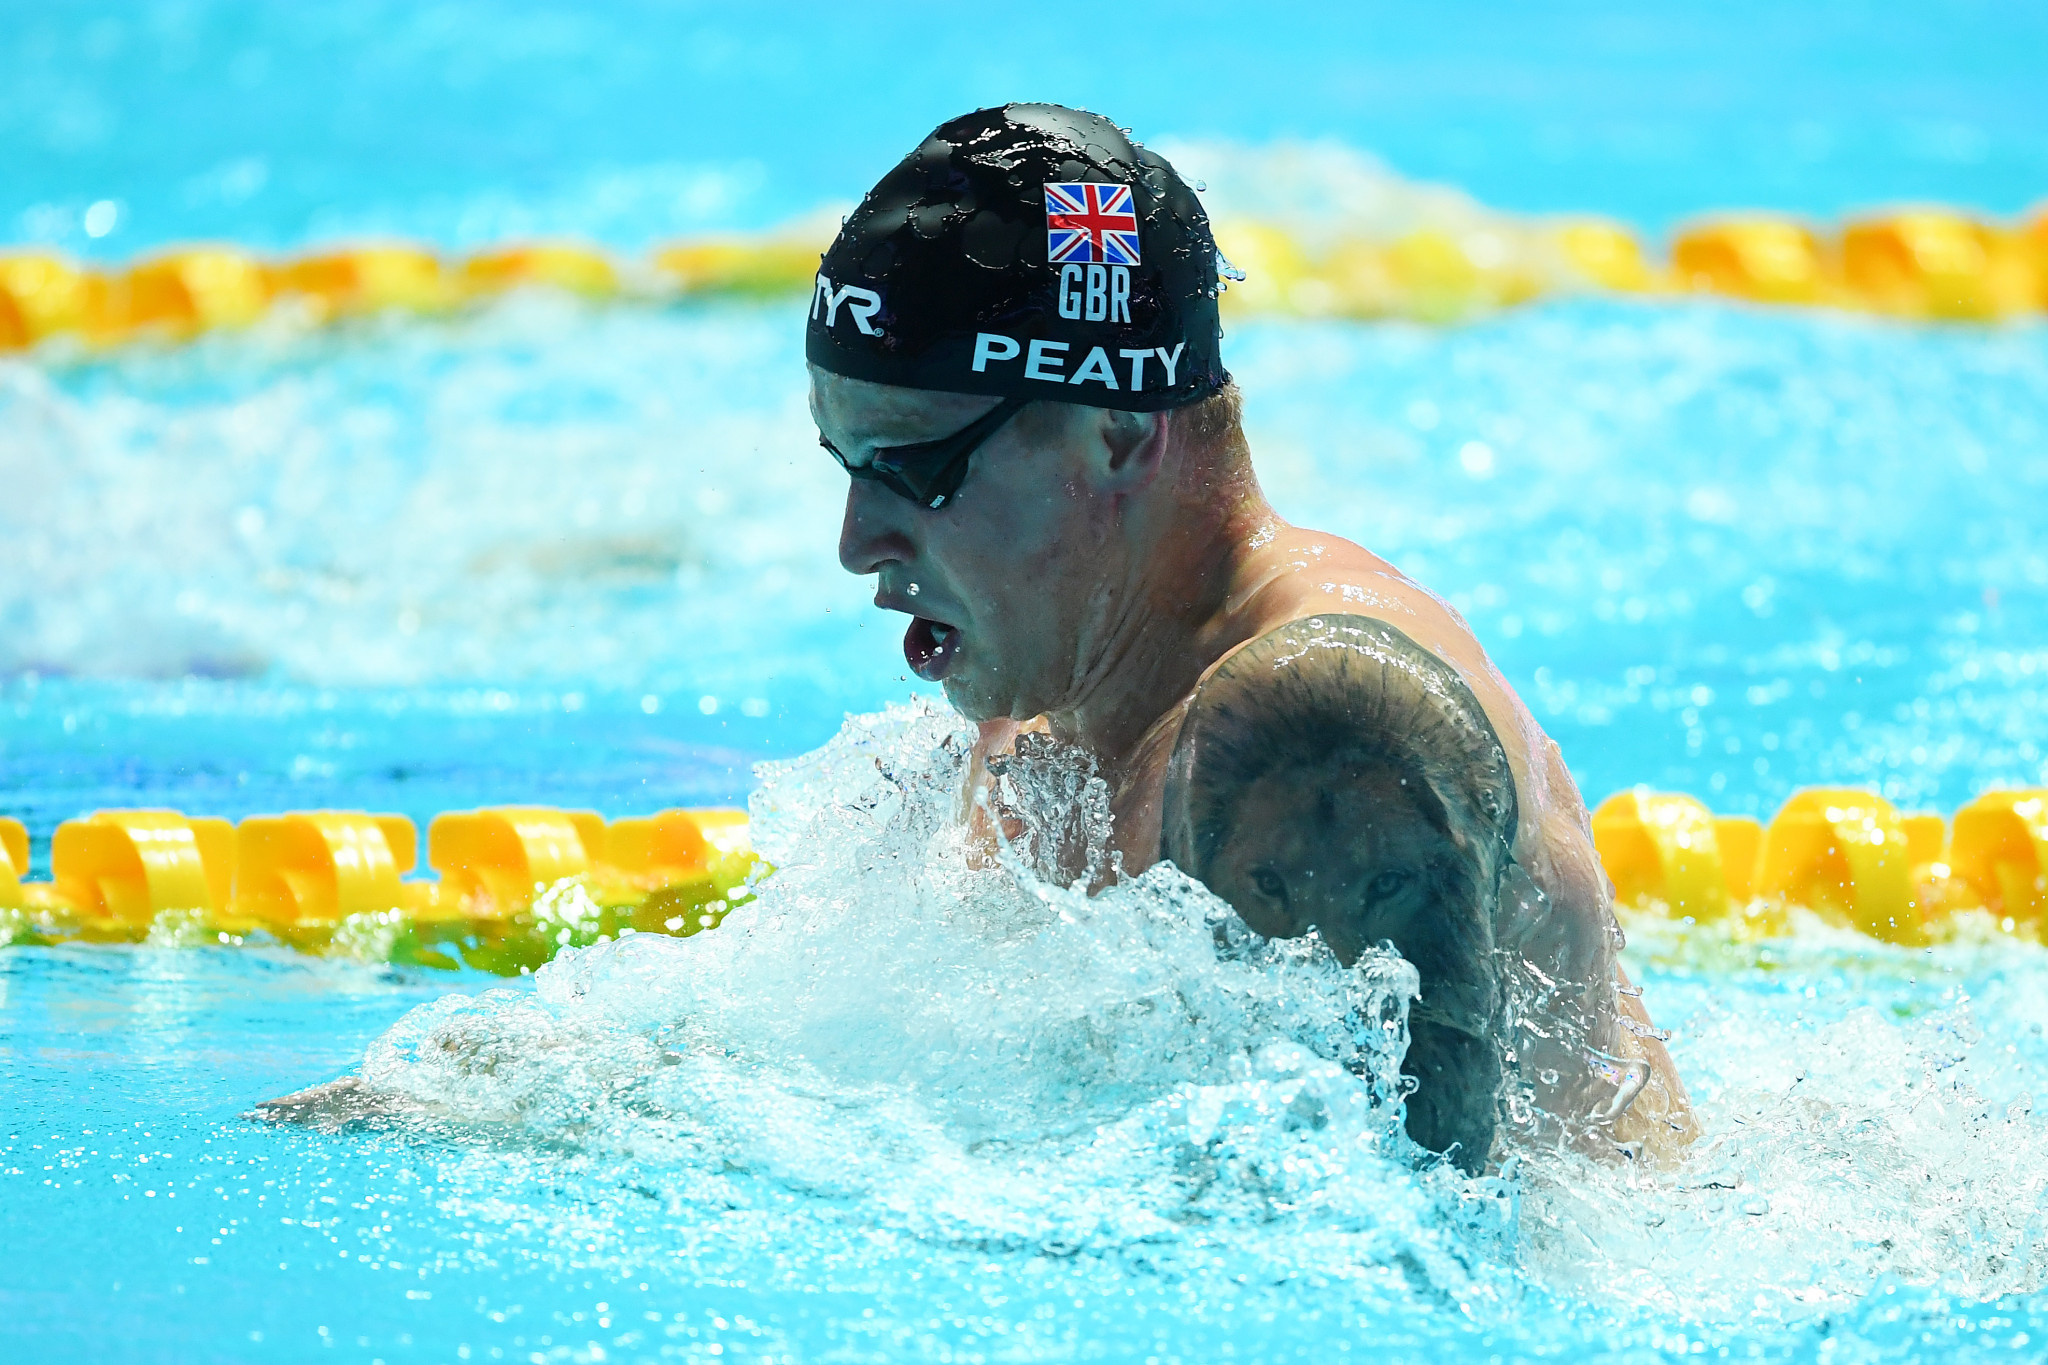 Olympic champion Peaty among quartet of British swimmers selected for Tokyo 2020